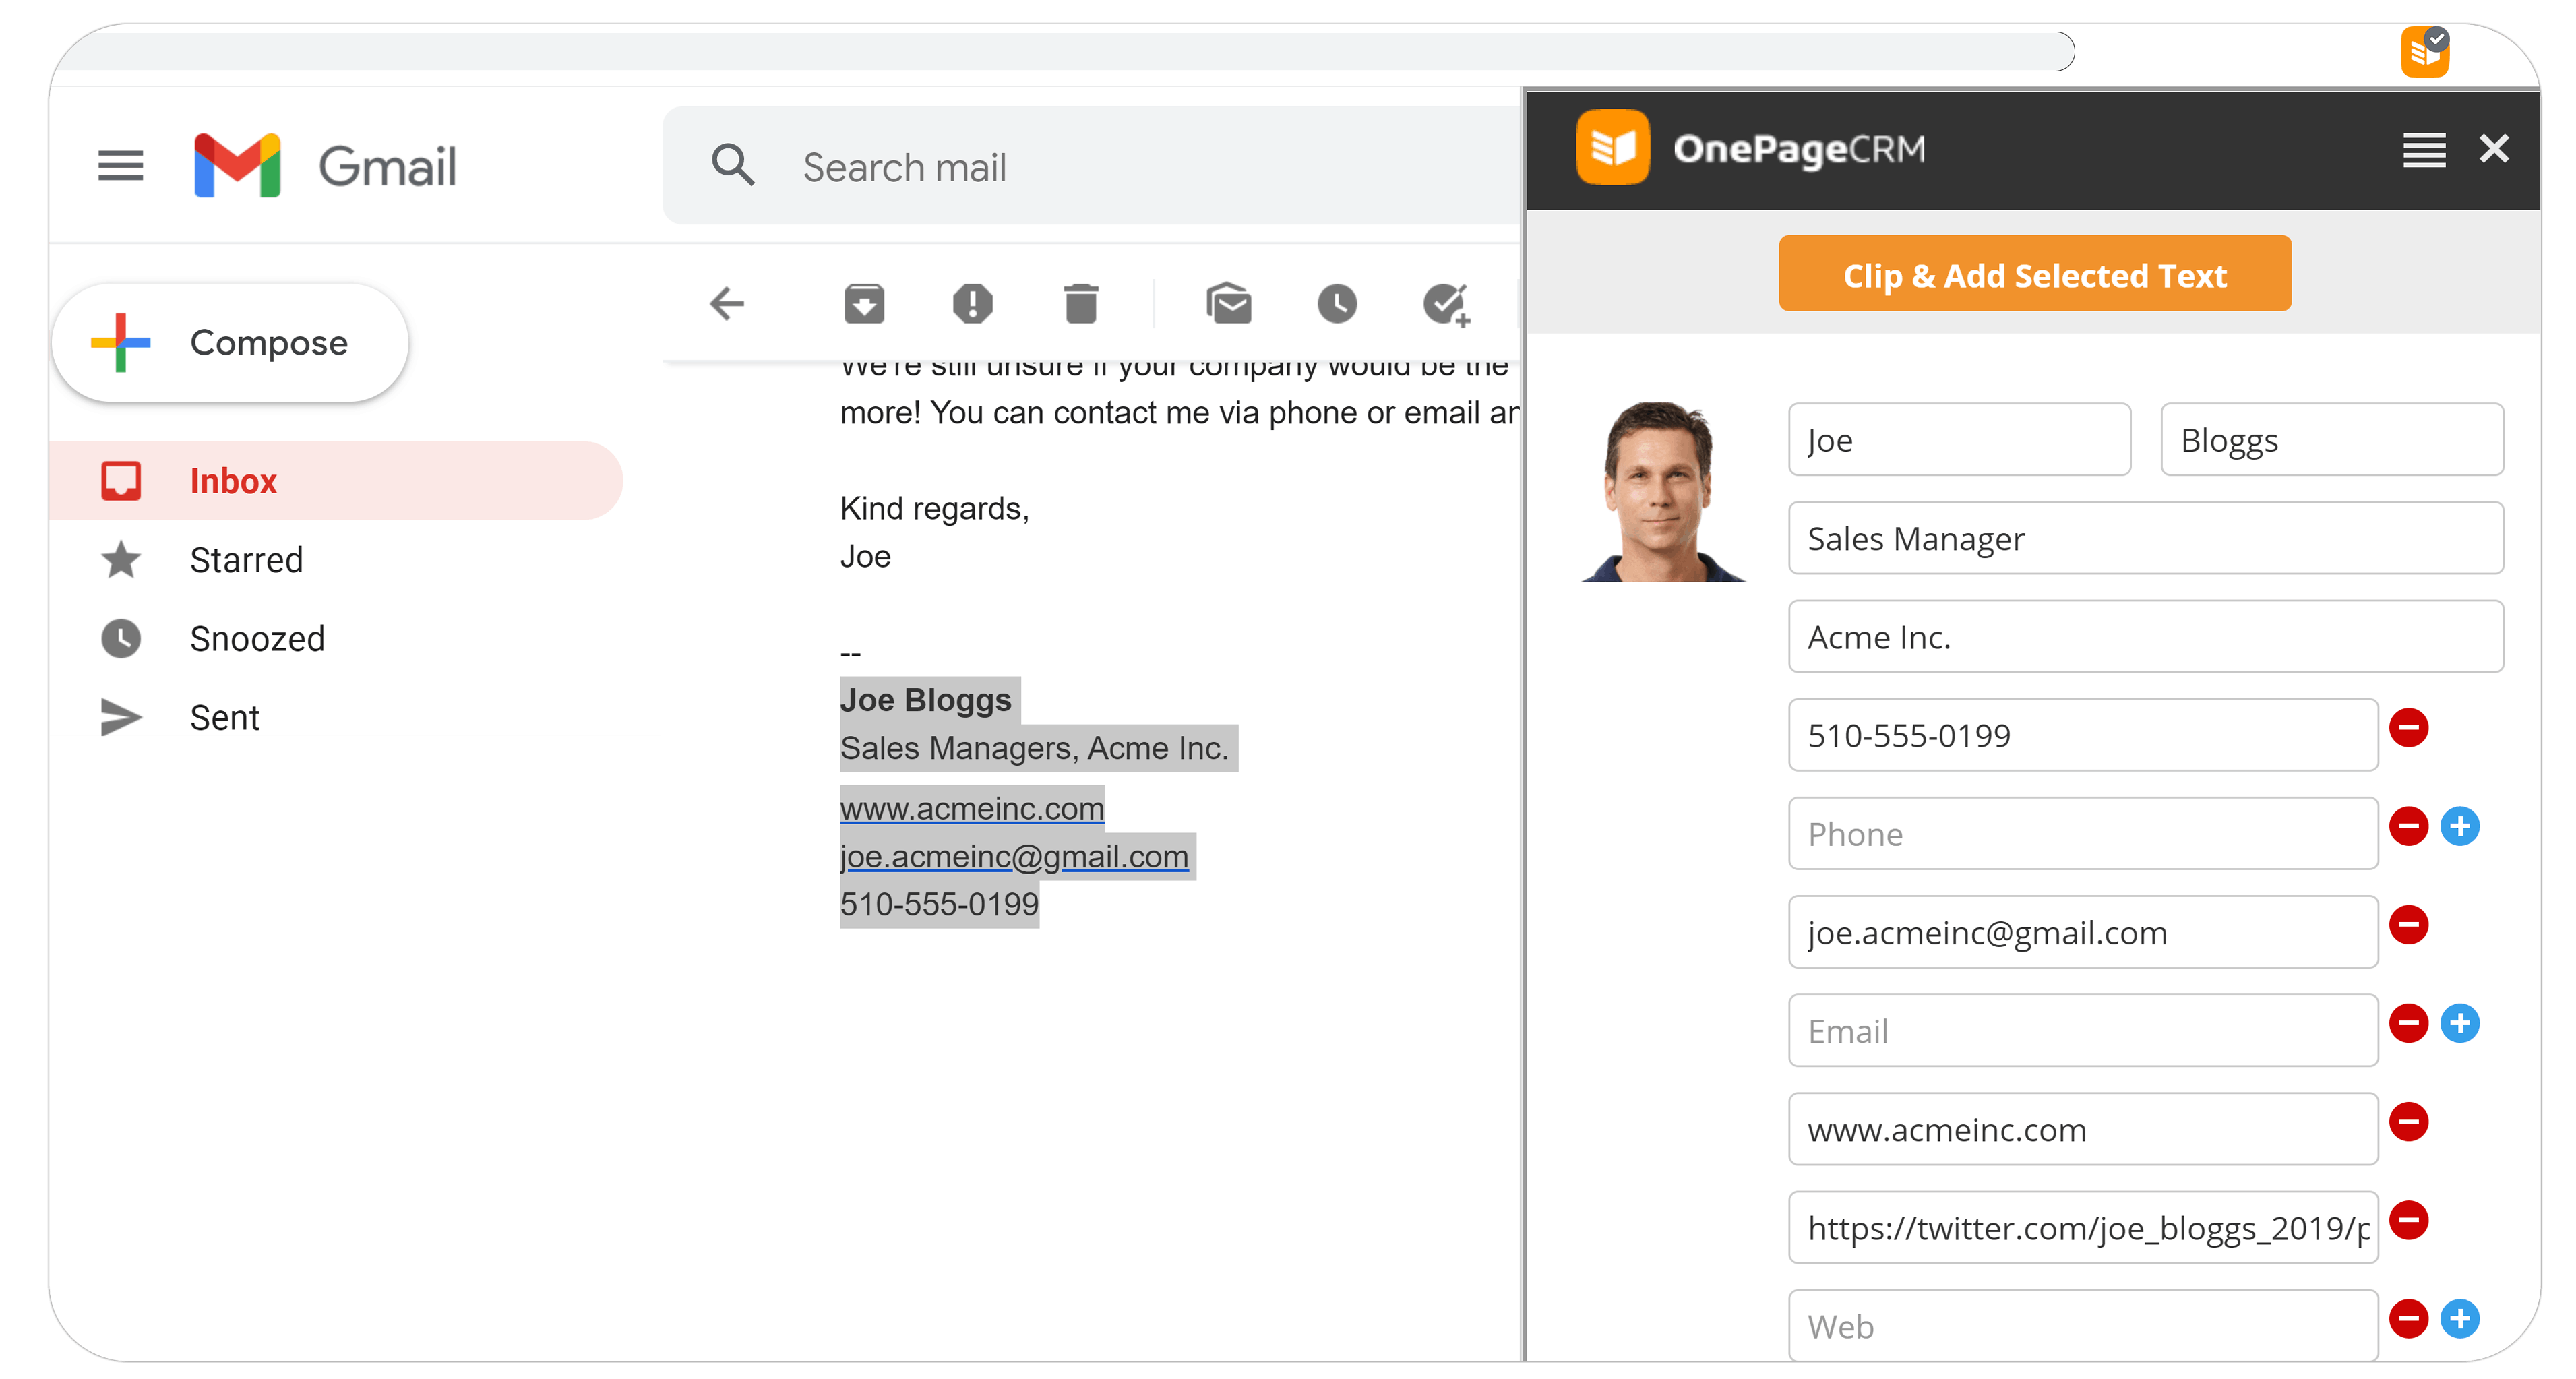 Generate leads from email signature